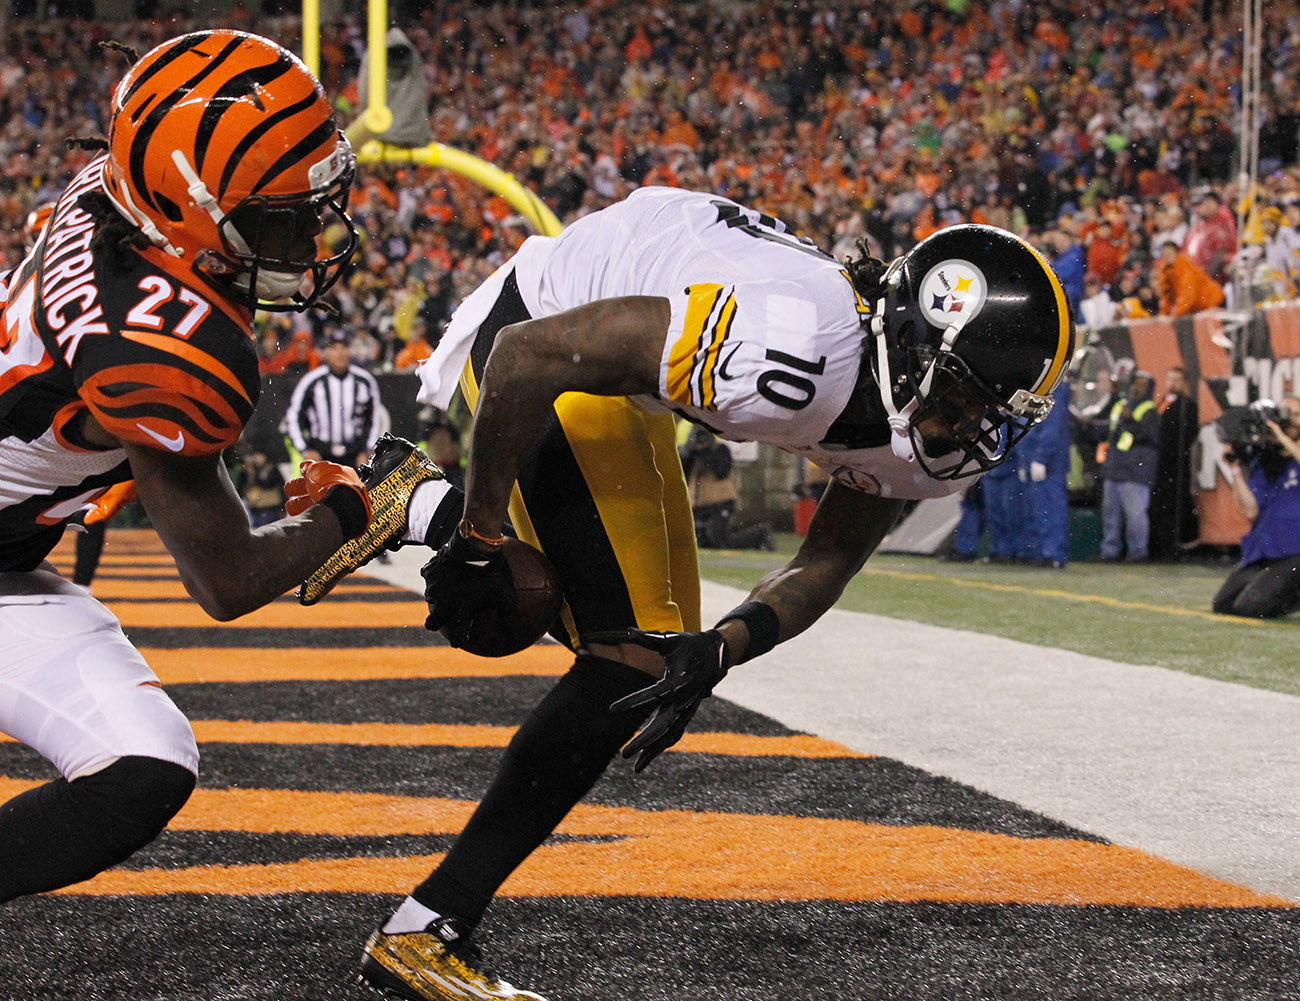 Two seasons ago, Bryant's memorable postseason included this acrobatic TD in Cincinnati.